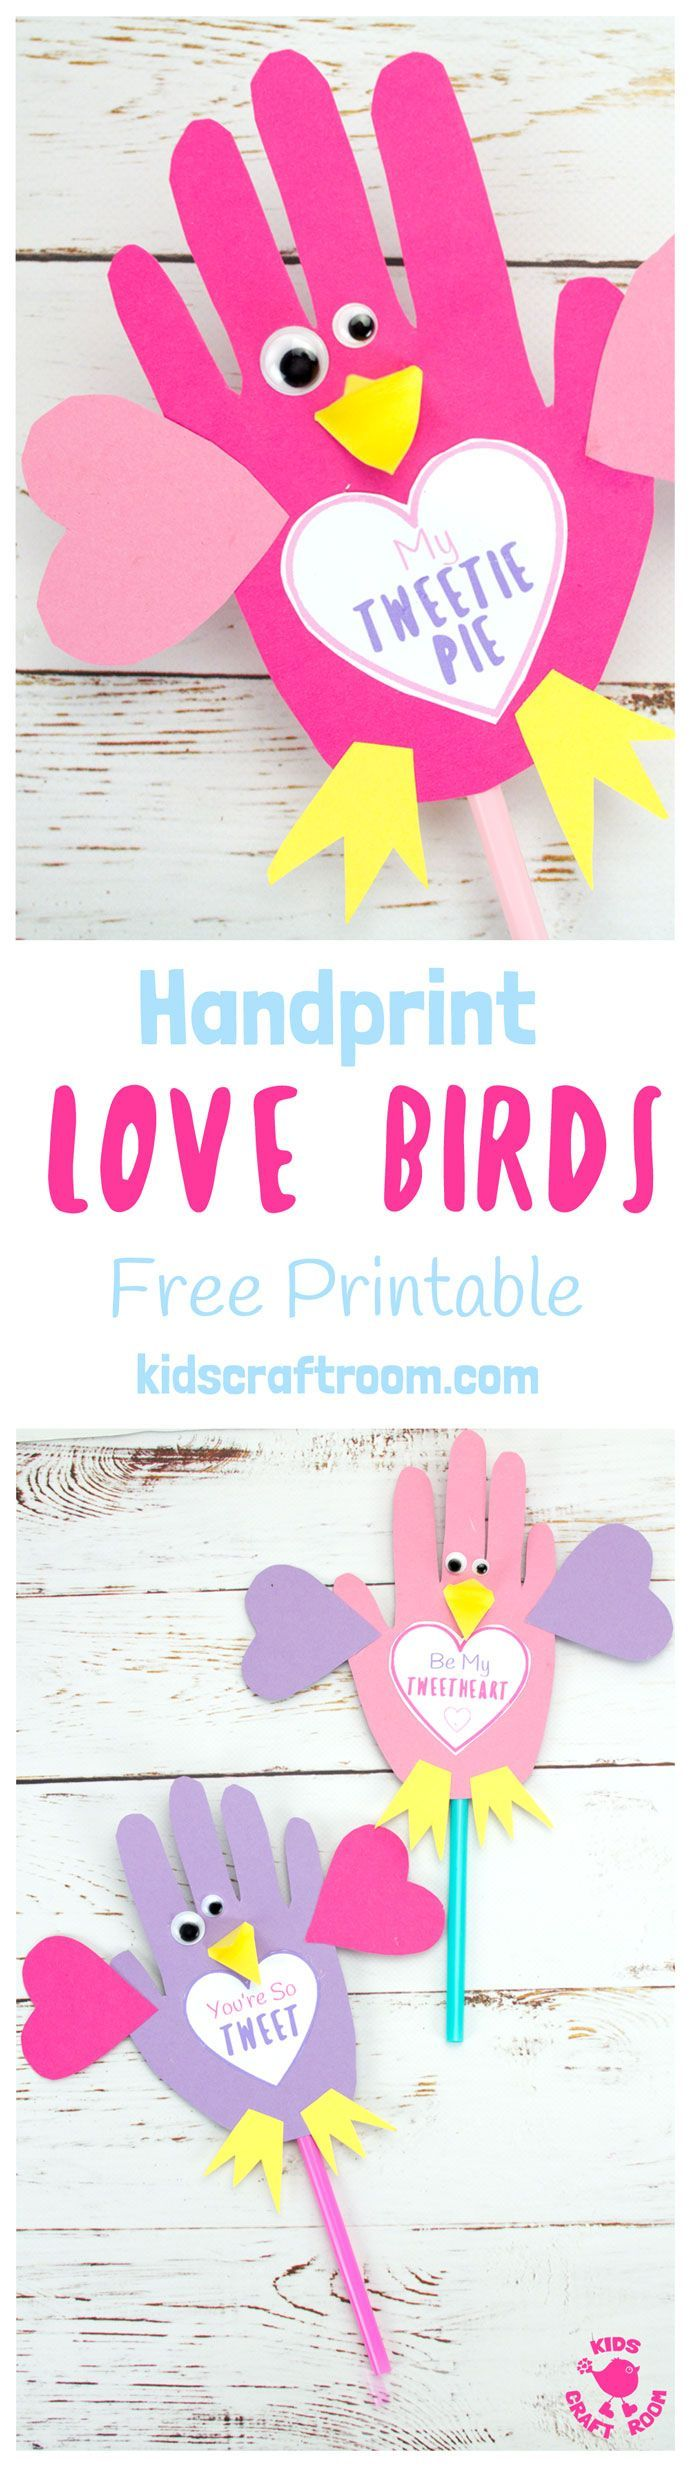 Grab your free printable template and make these adorable Handprint Love Birds.